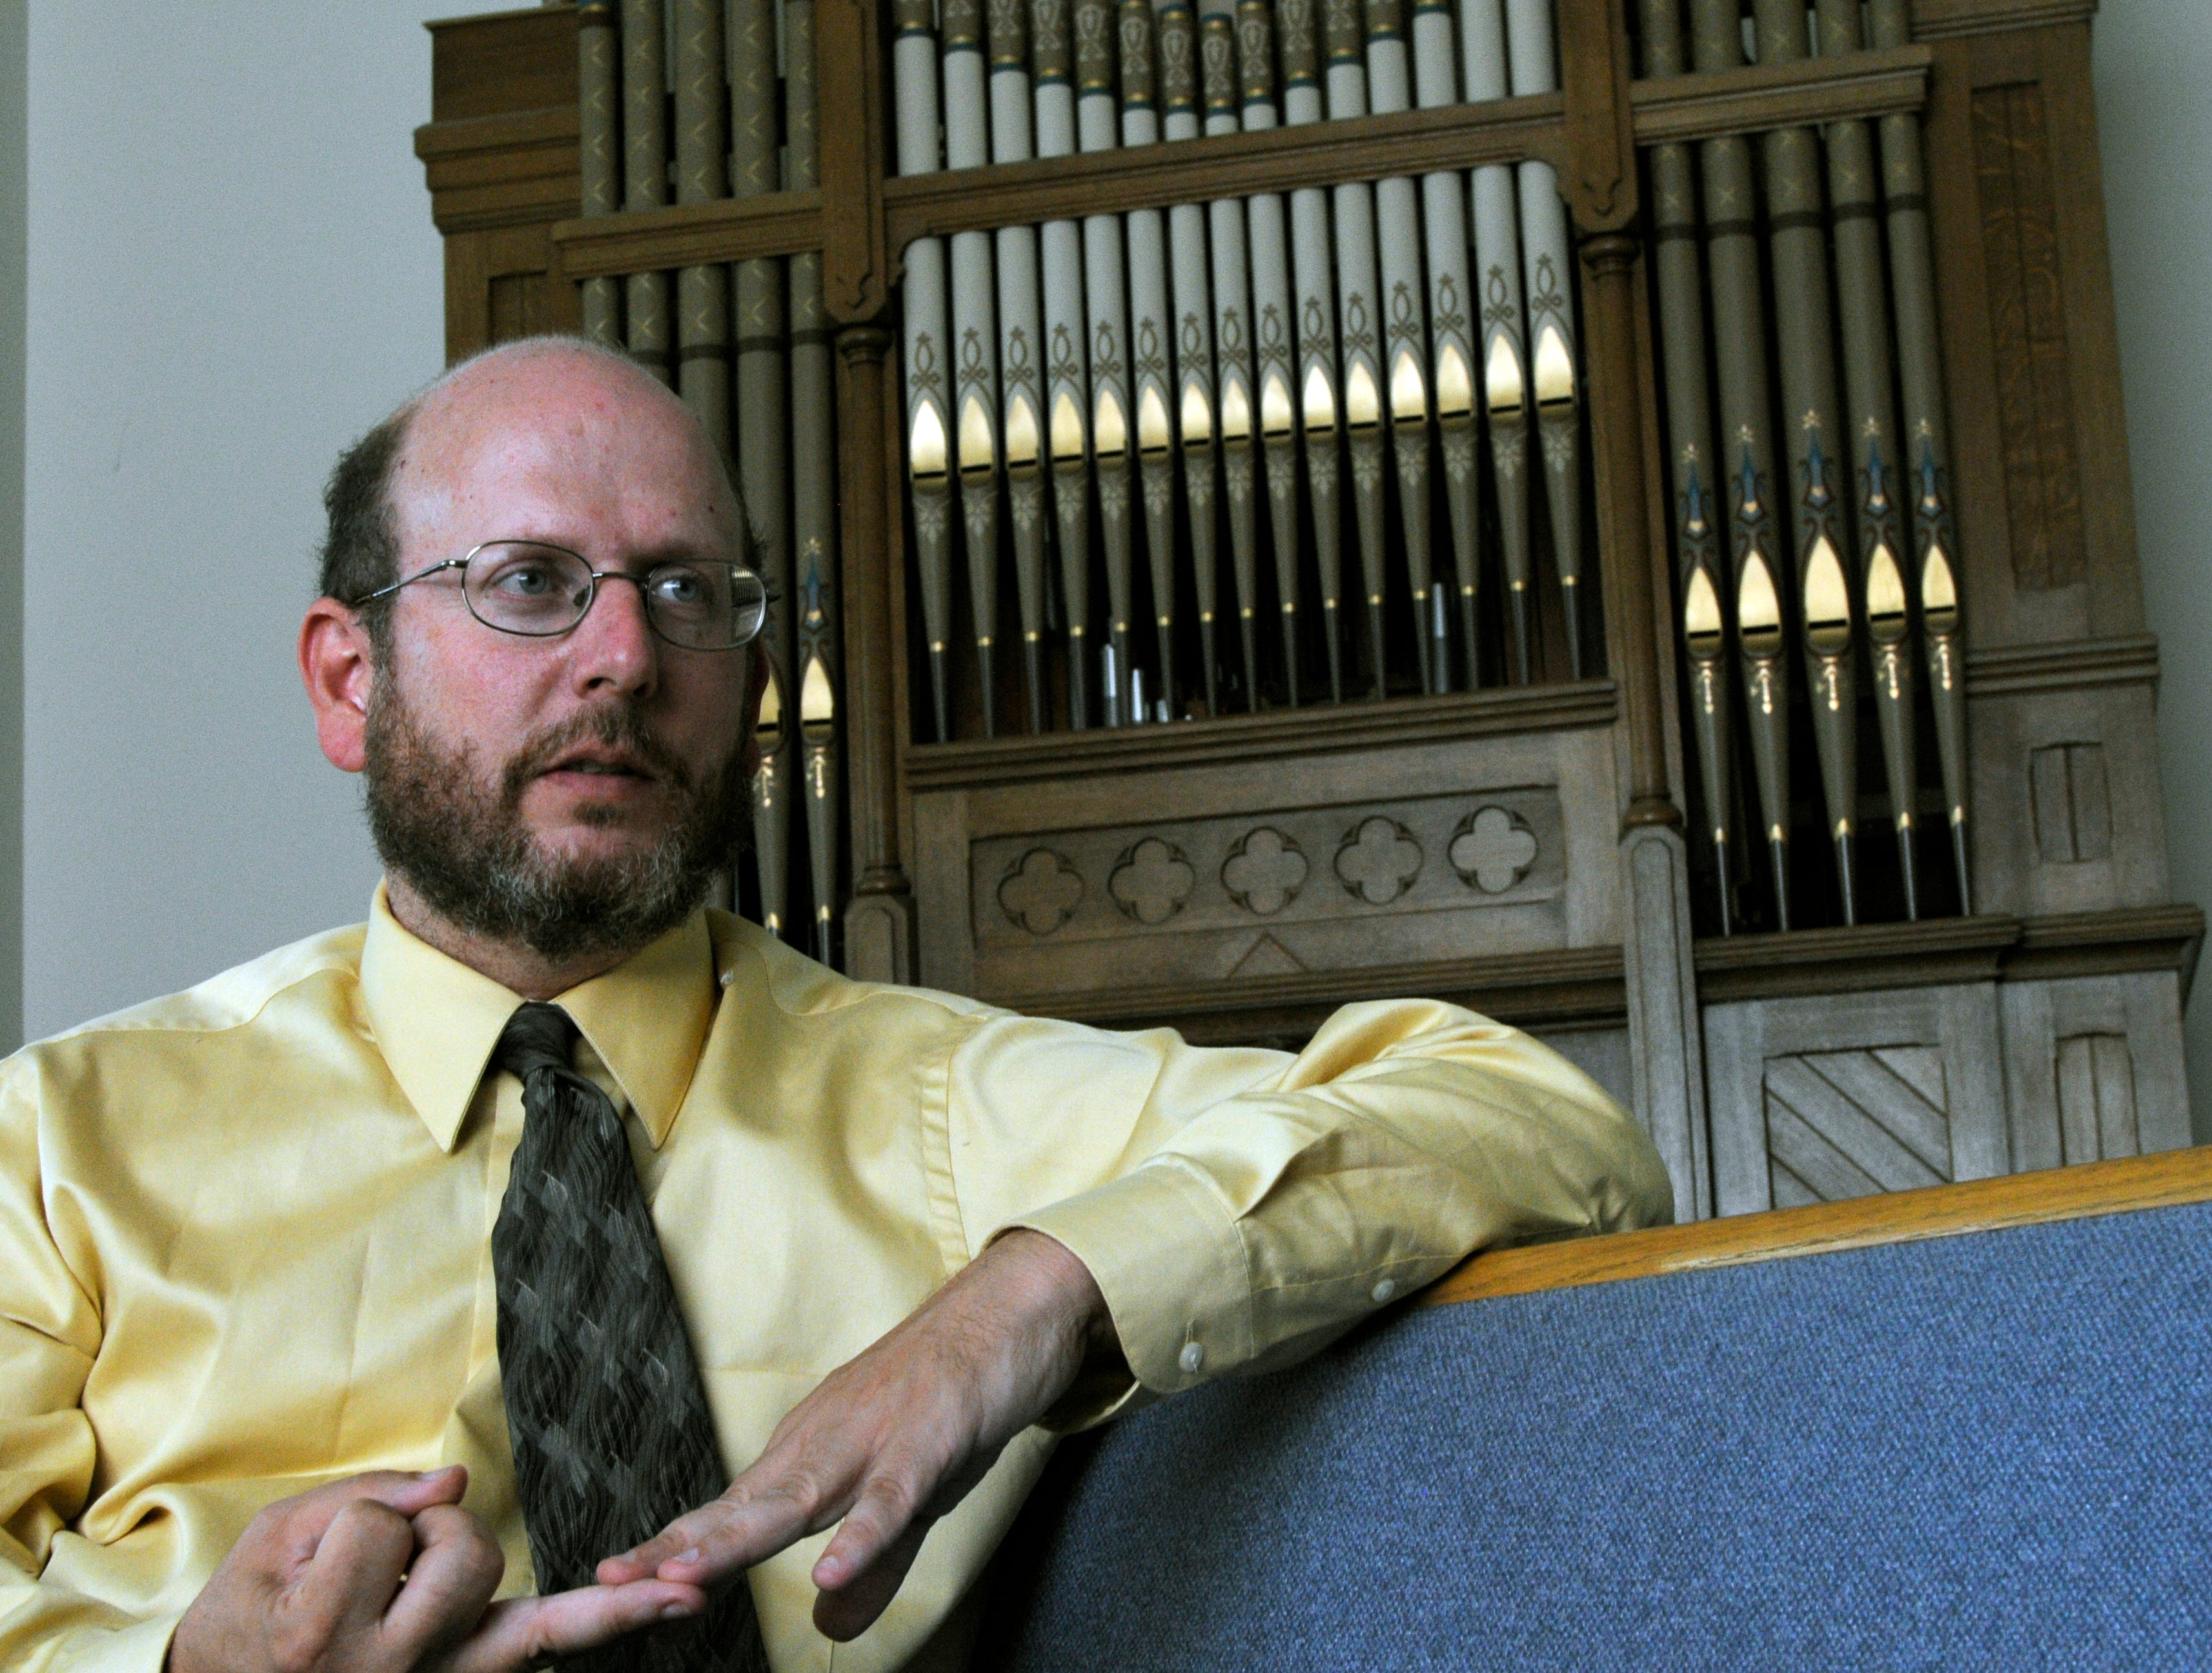 Chris Buice, pastor of the Tennessee Valley Unitarian Universalist Church, talked to the News Sentinel Wednesday afternoon at the church.